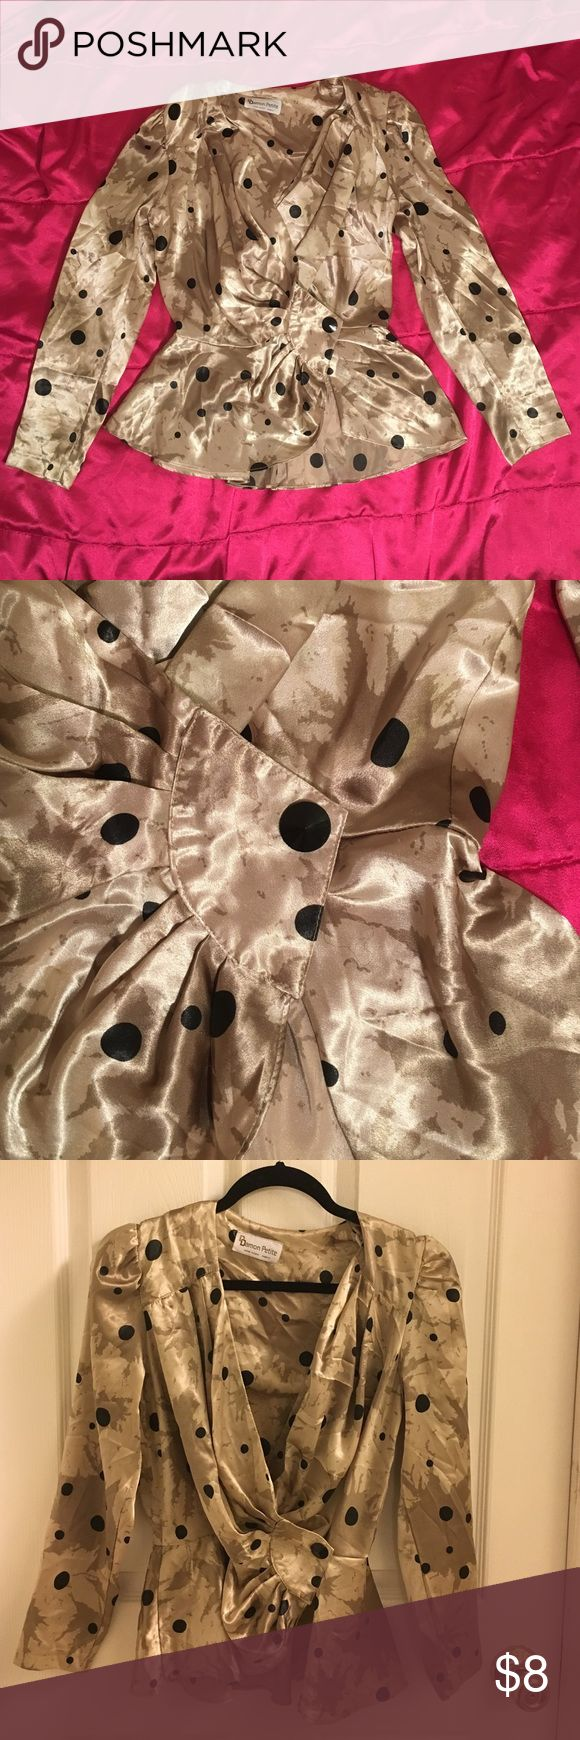 Vintage Satin Blouse Gold with black polka dots. One side button. Long sleeve. Light weight satin material. Vintage Tops Blouses